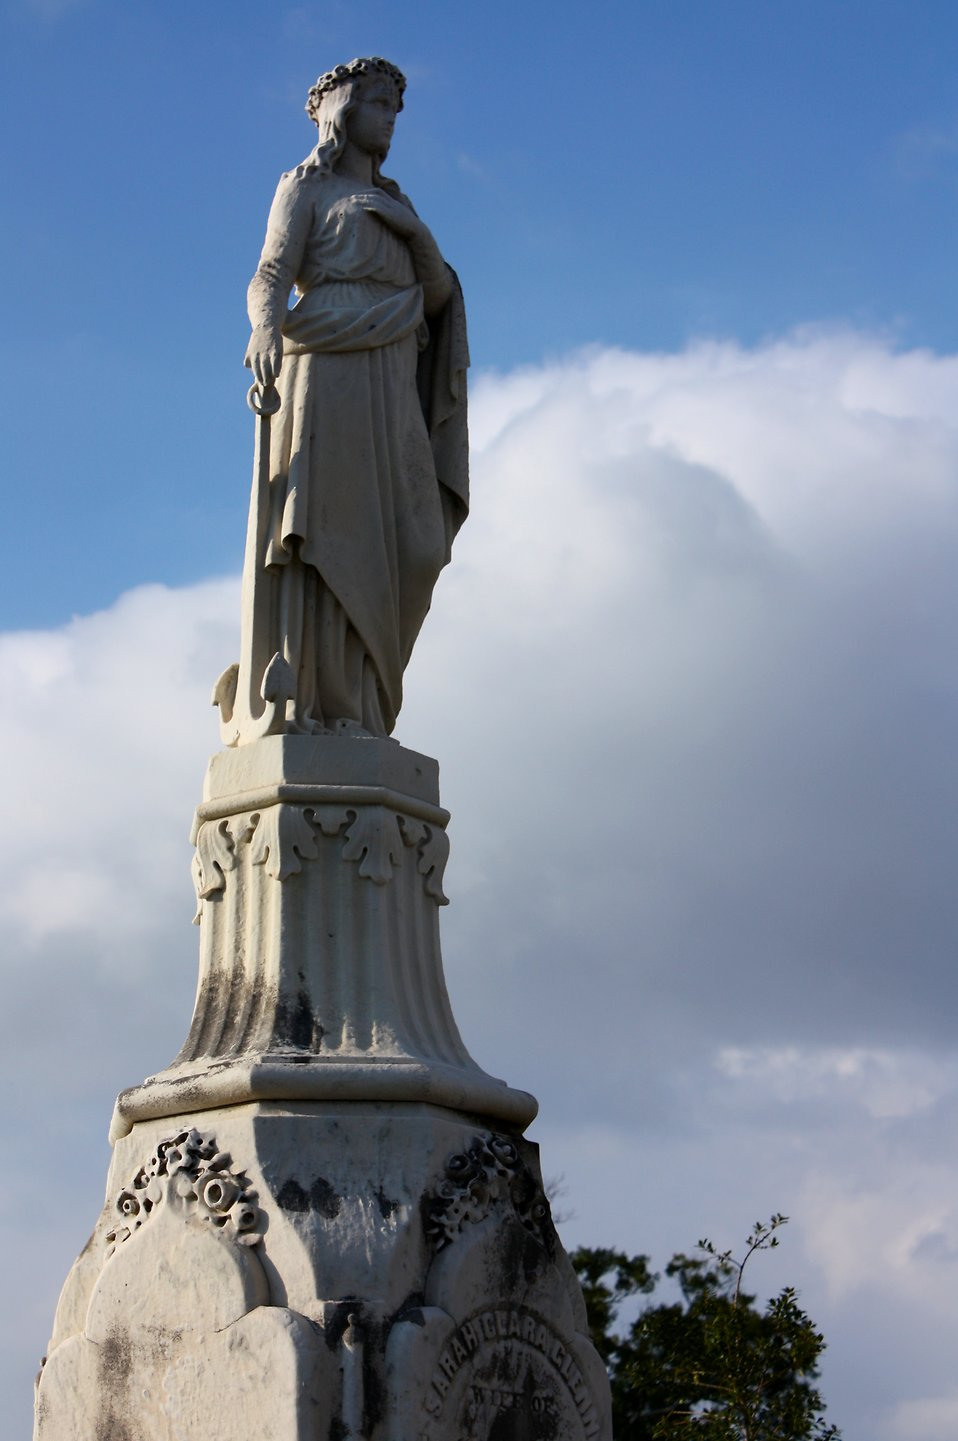 A large statued tombstone at historic Oakland Cemetery in Atlanta, Georgia : Free Stock Photo